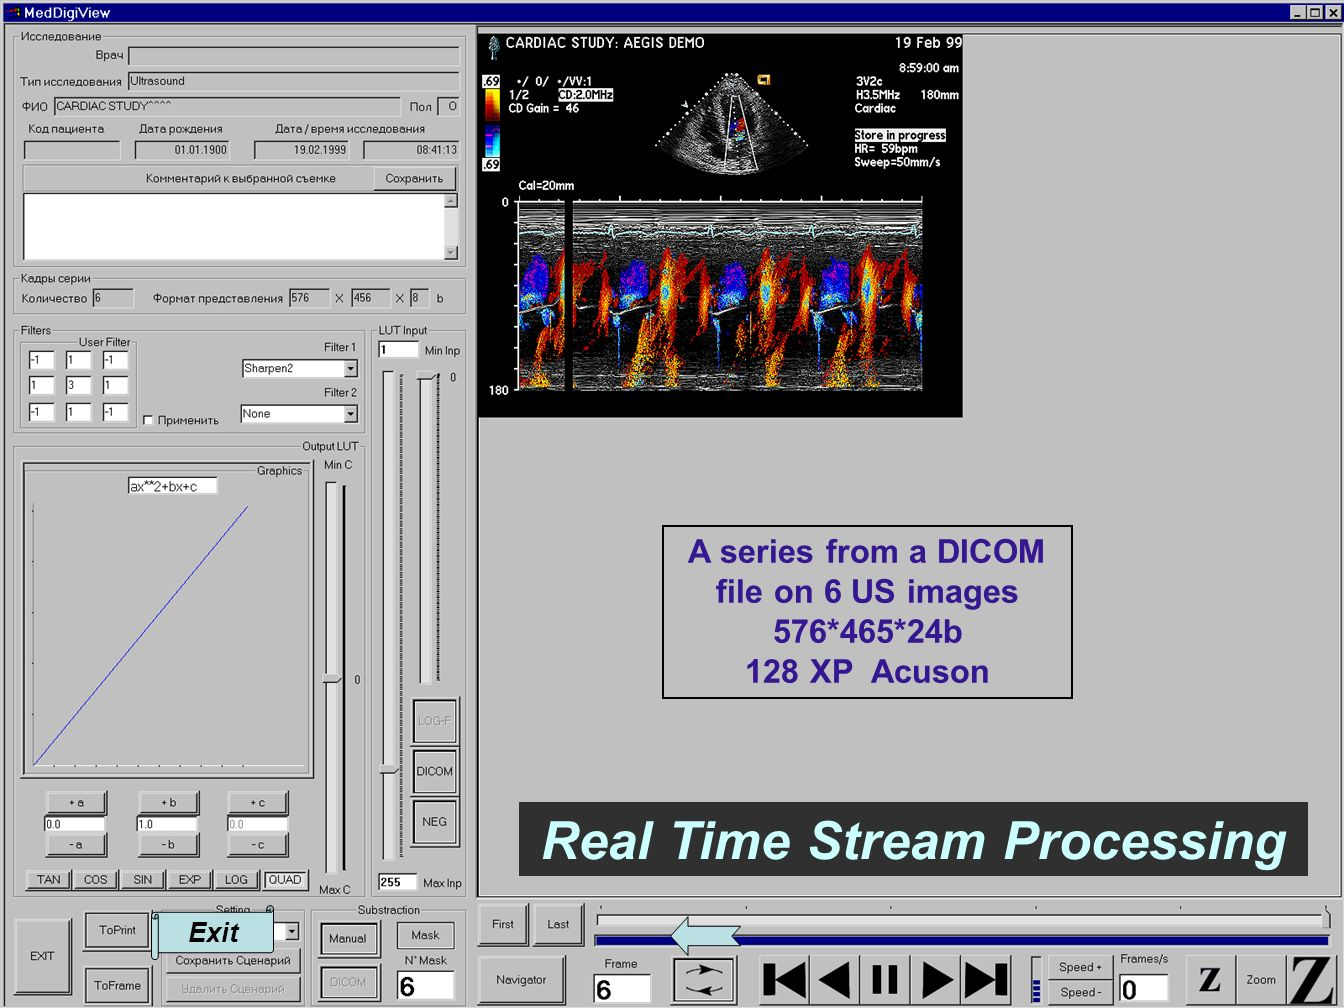 A series from a DICOM file on 6 US images Real Time Stream Processing